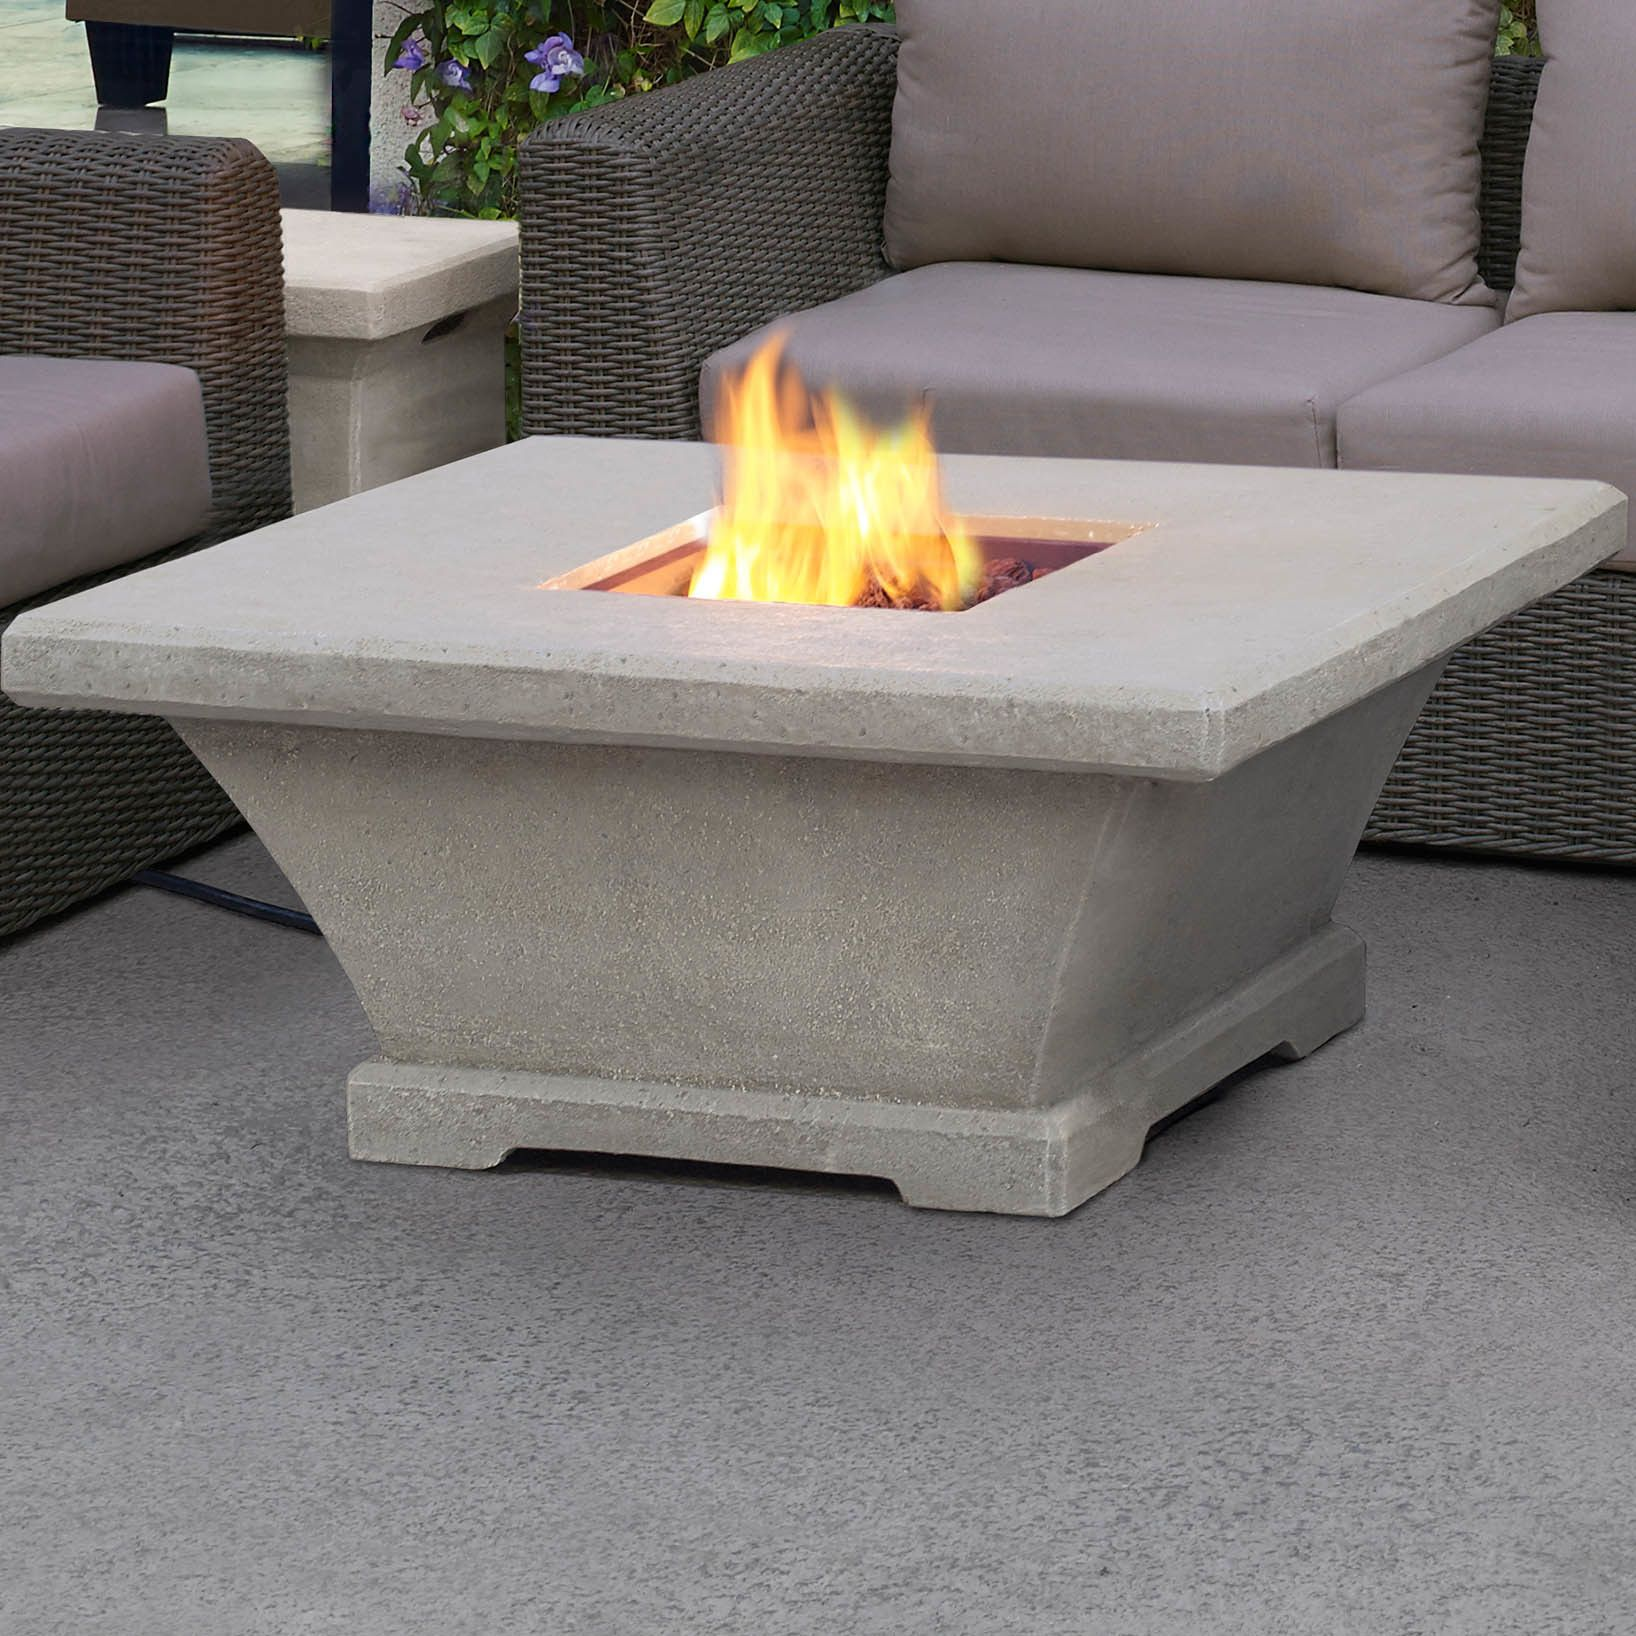 a98023b4c87becabc632f13aaf97d327 Top Result 50 Awesome Fire Pit Table and Chairs